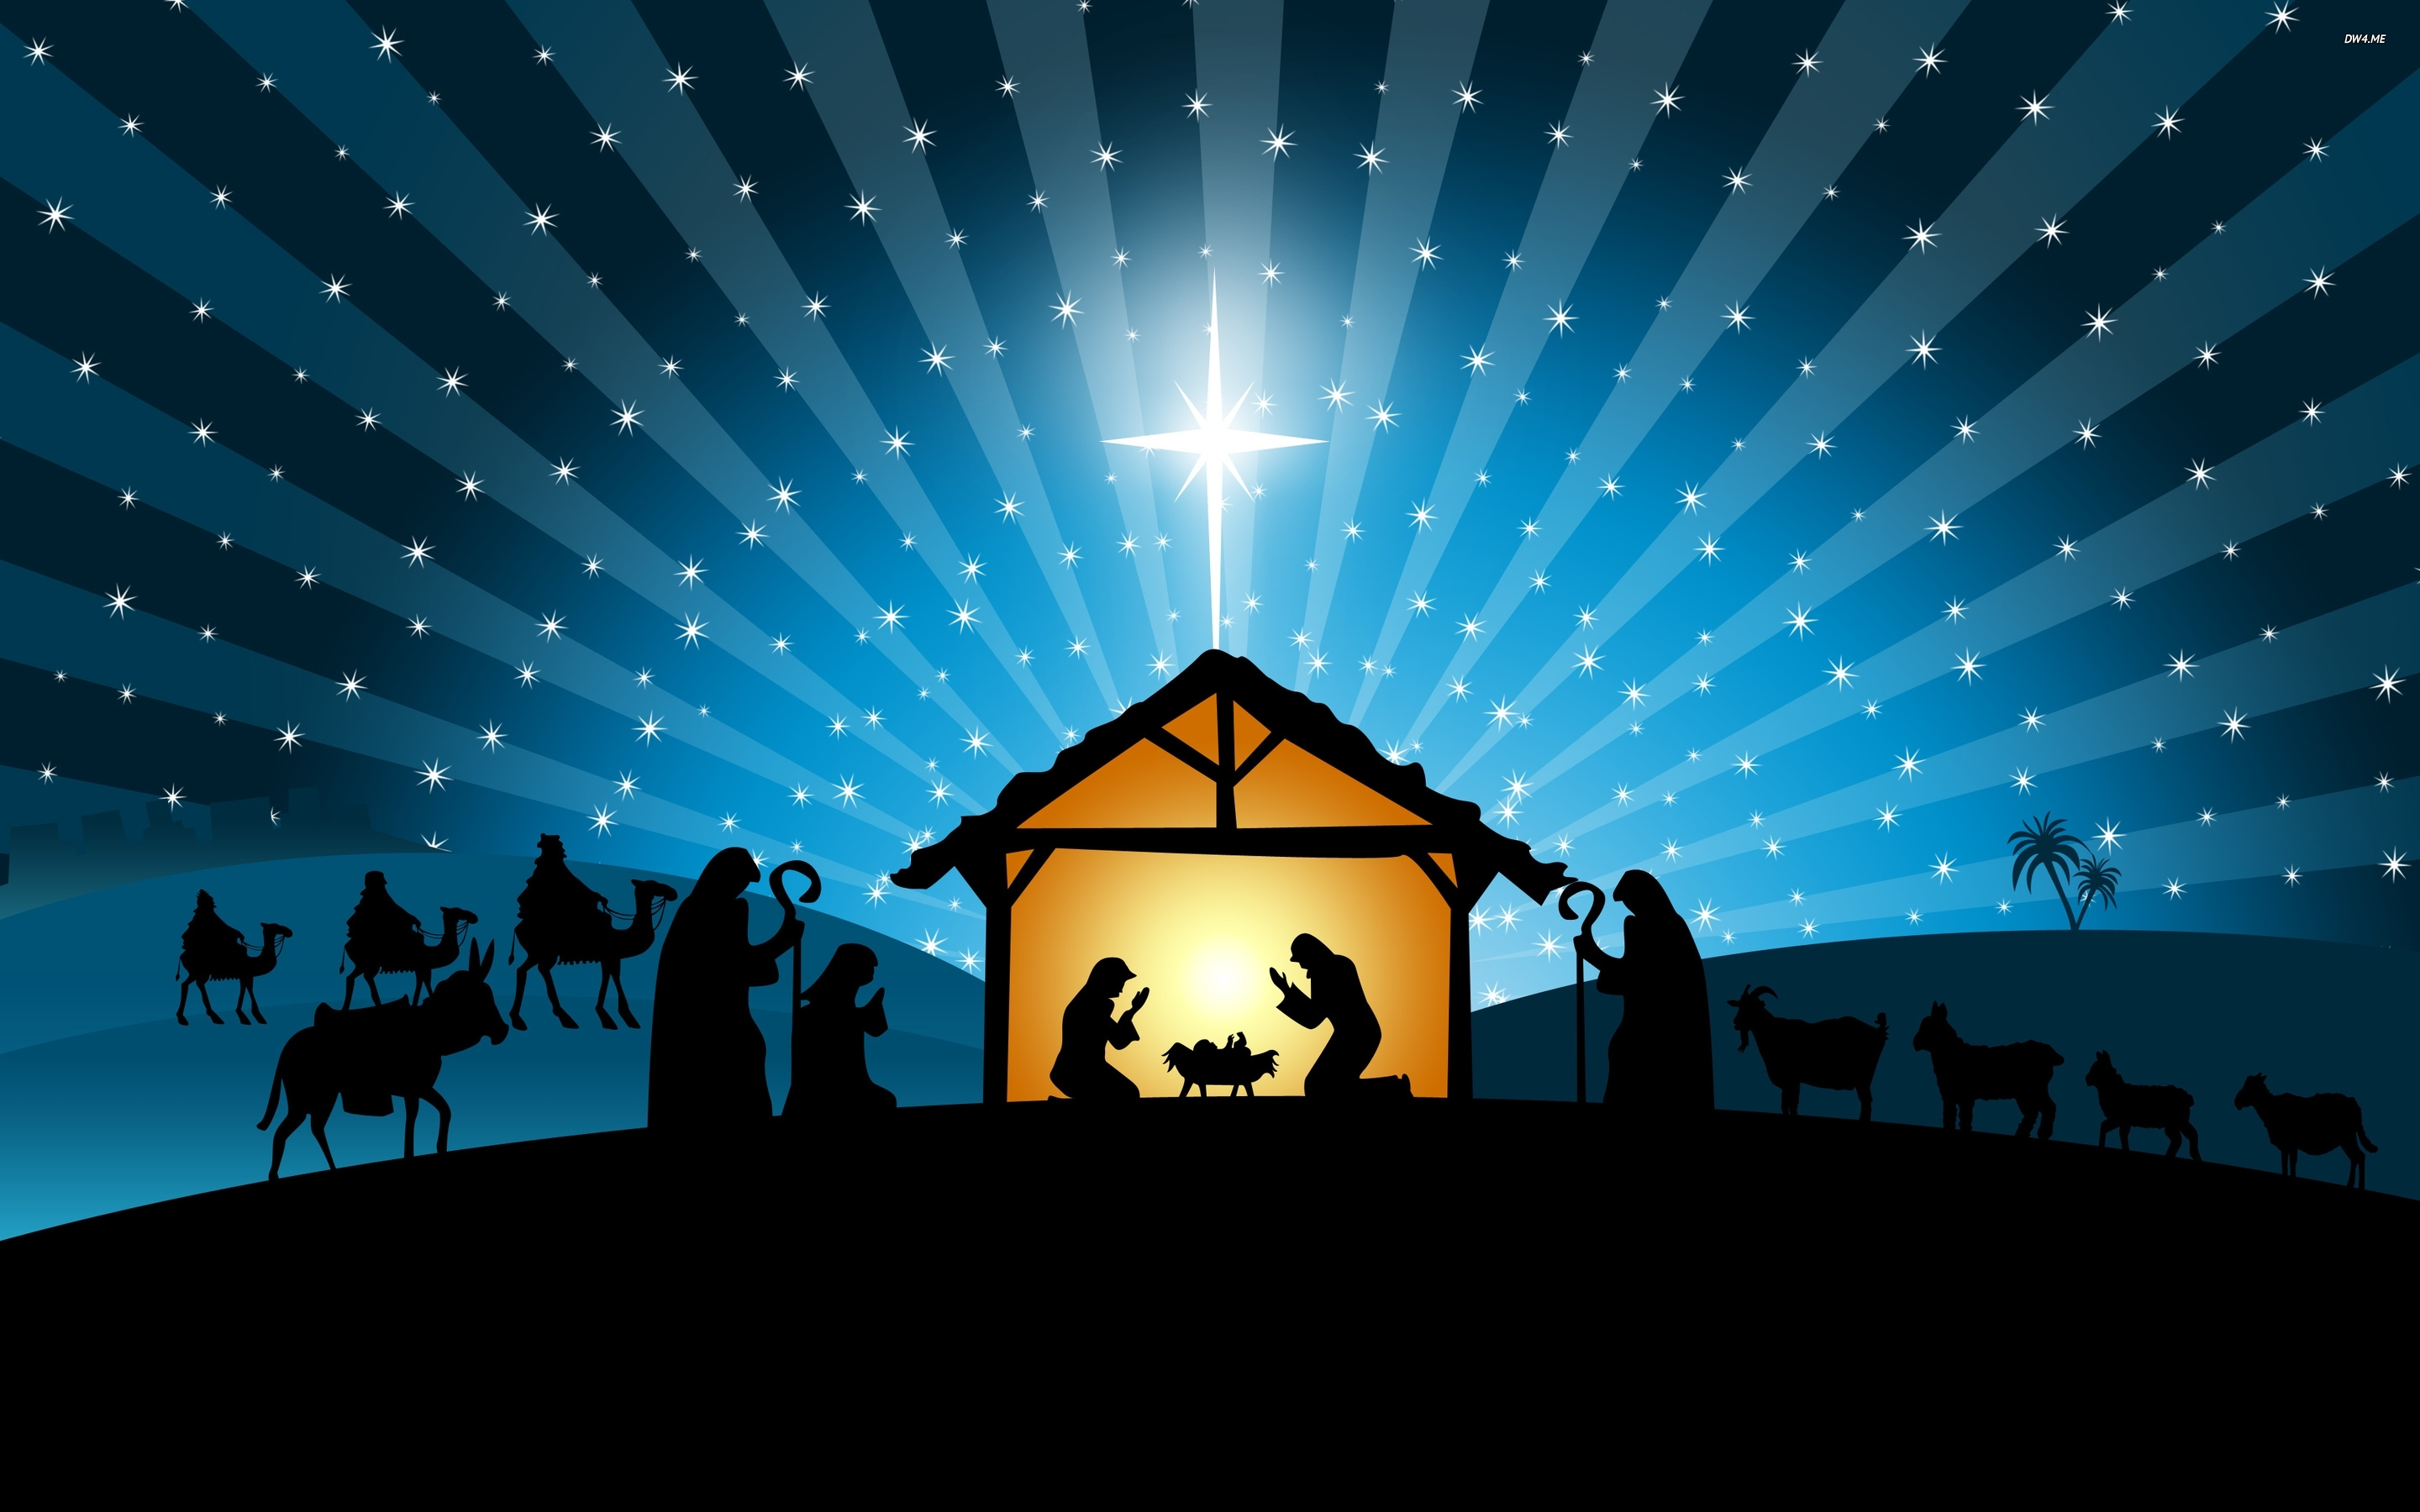 10 Latest Nativity Scene Wallpaper Screensaver FULL HD 1920×1080 For PC Background